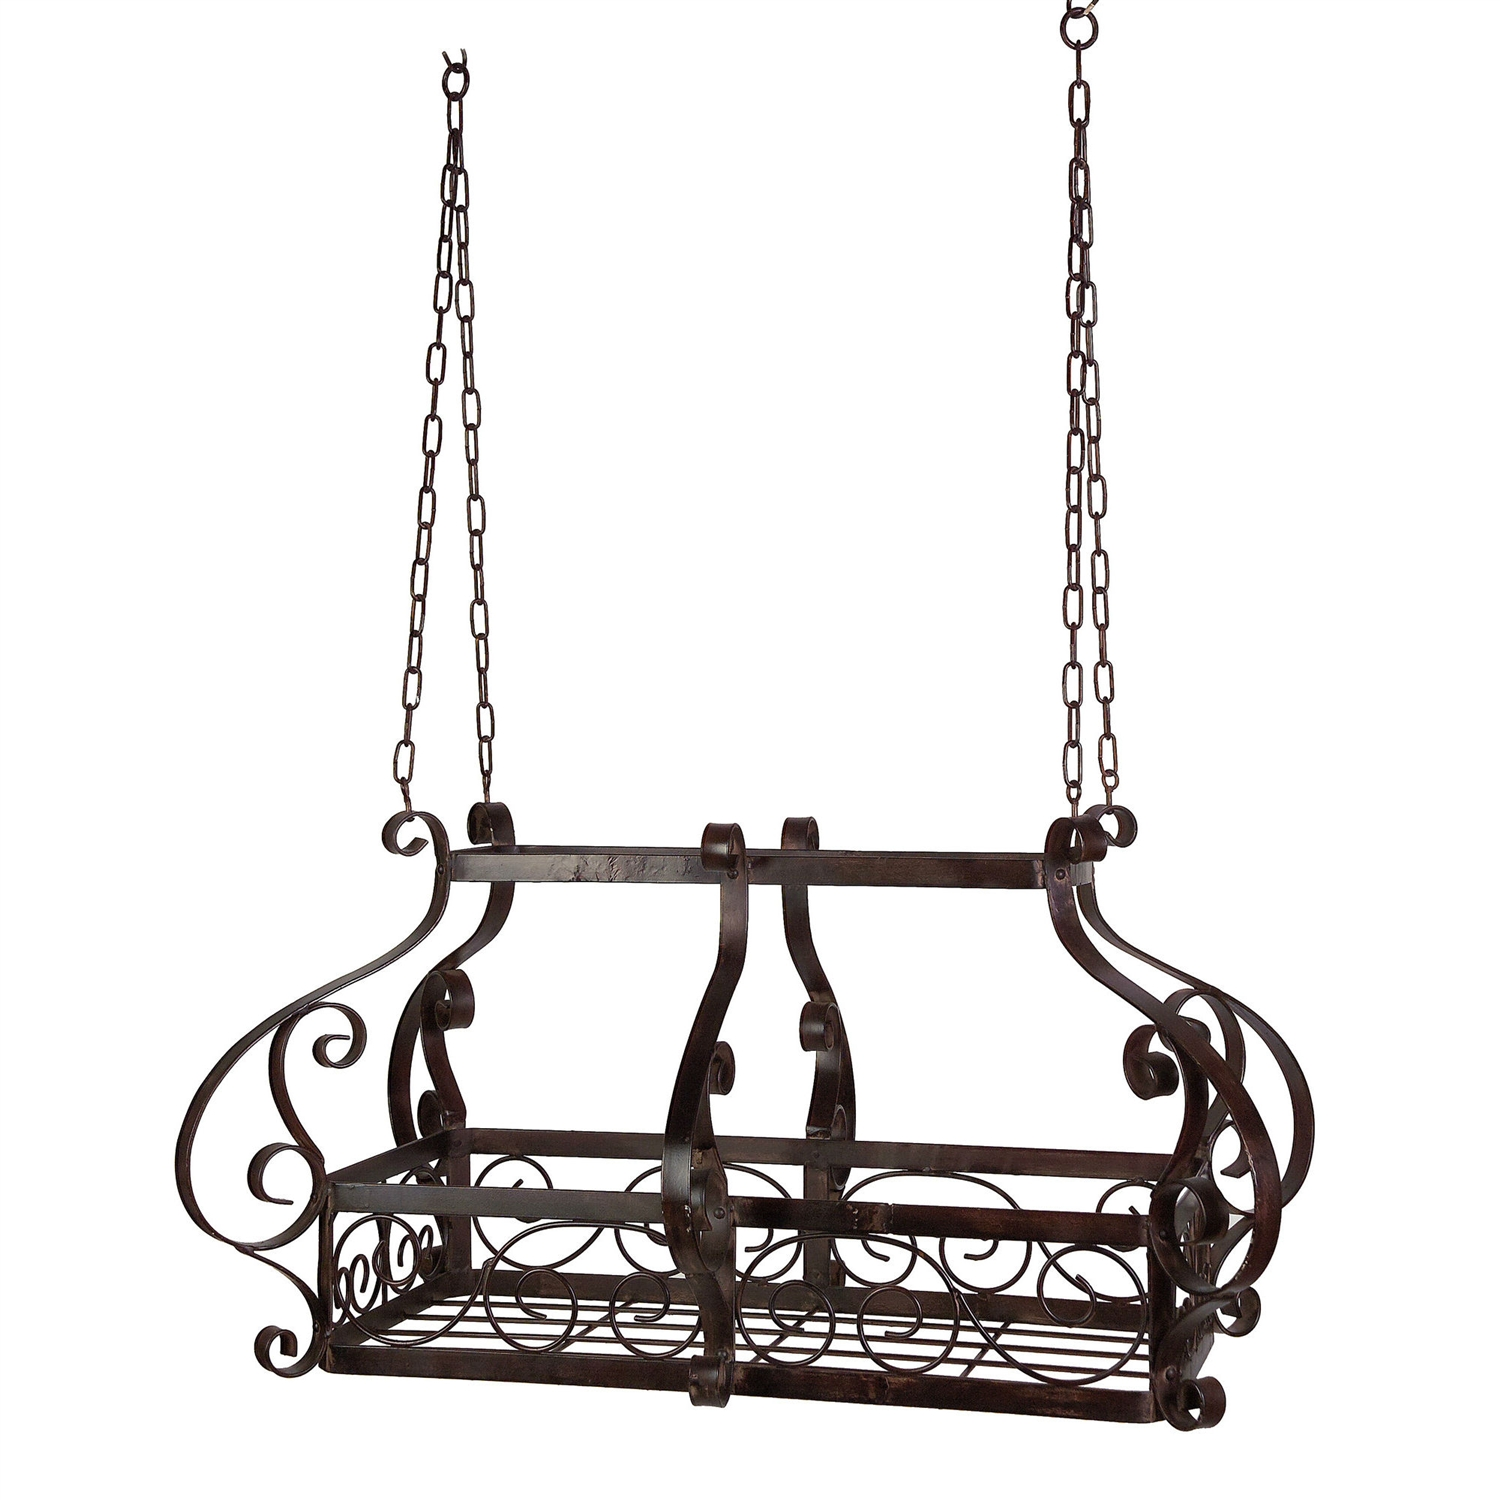 This Brow Scrolling Metal Traditional Ceiling Hanging Pot Rack with 12 Hooks would be a great addition to your home. It has an old world charm and 12 hanging hooks included. Material: Metal; Shape: Rectangular/Square; Shelving: Yes; Country of Manufacture: China.